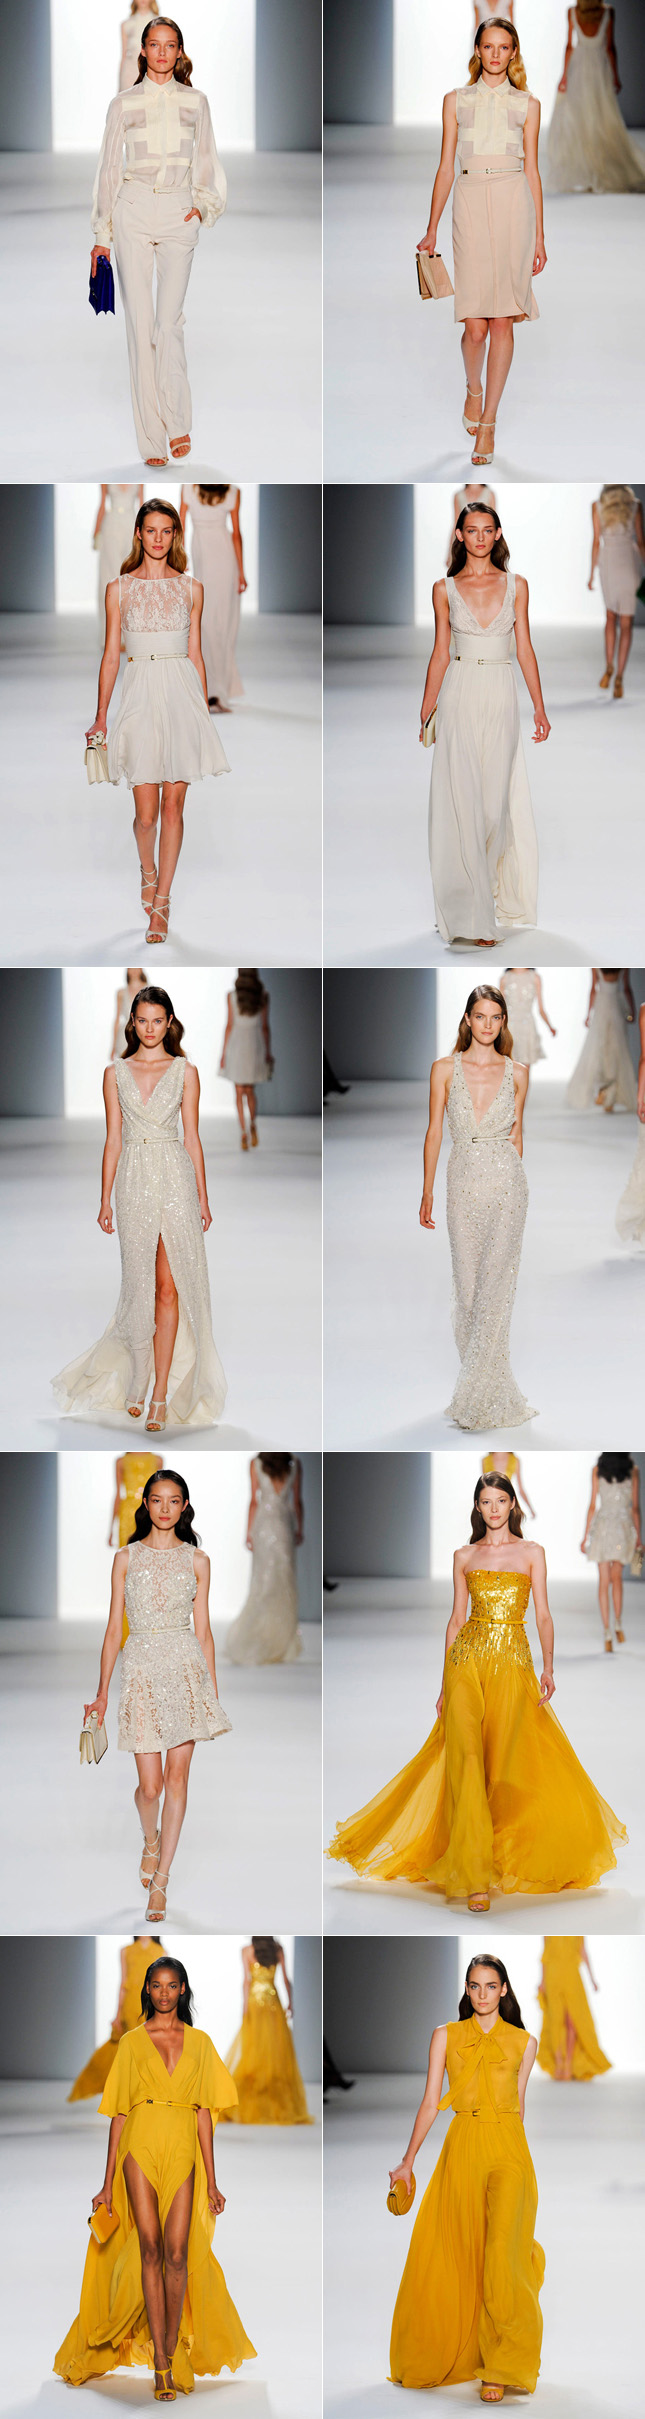 Elie Saab Verão 2012 Desfile Paris Fashion Week